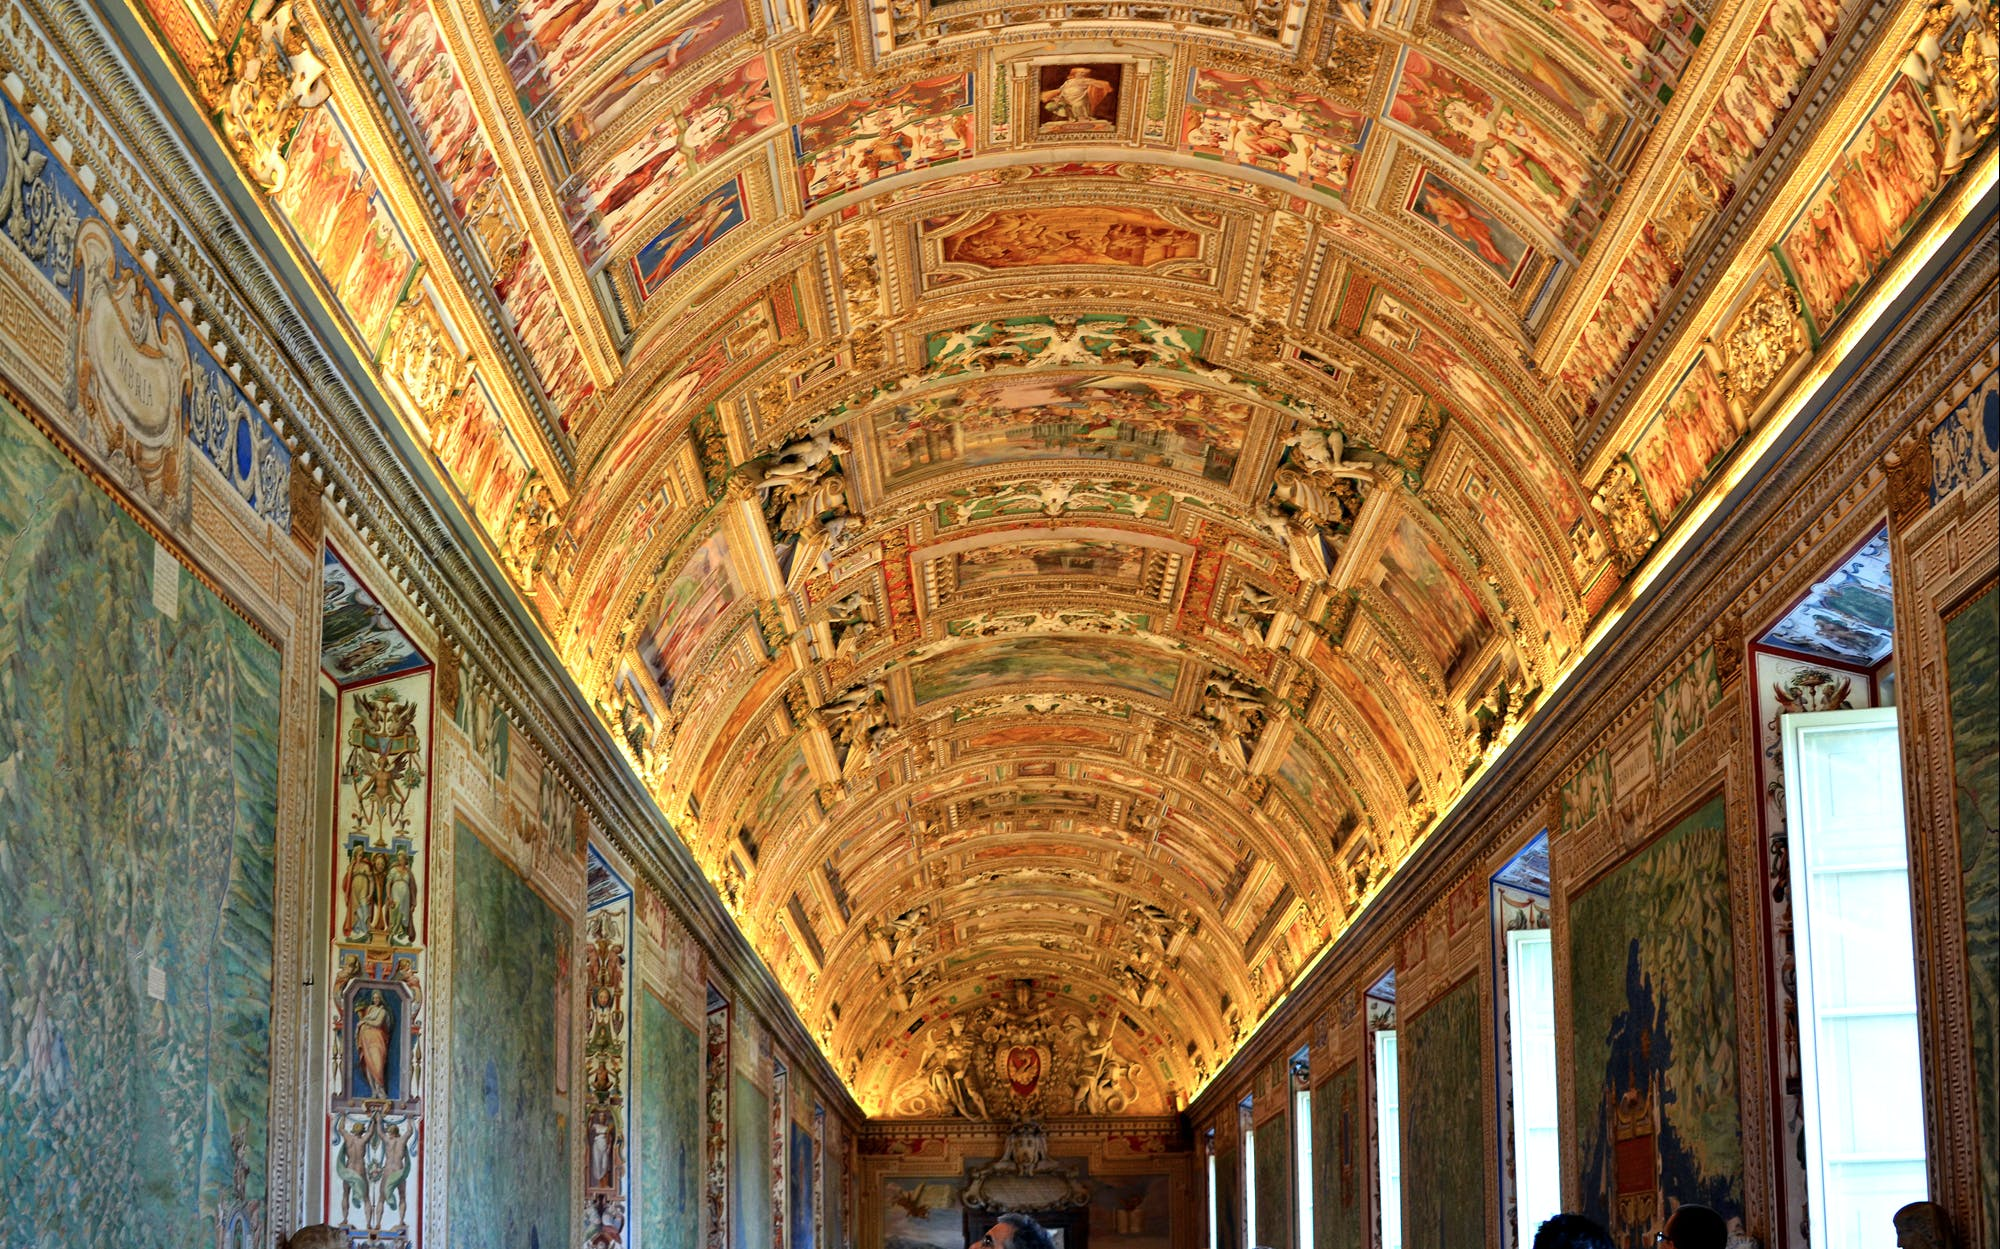 Vatican Museum & Sistine Chapel Skip the Line Ticket + 2 Day Hop on/Hop off Pass